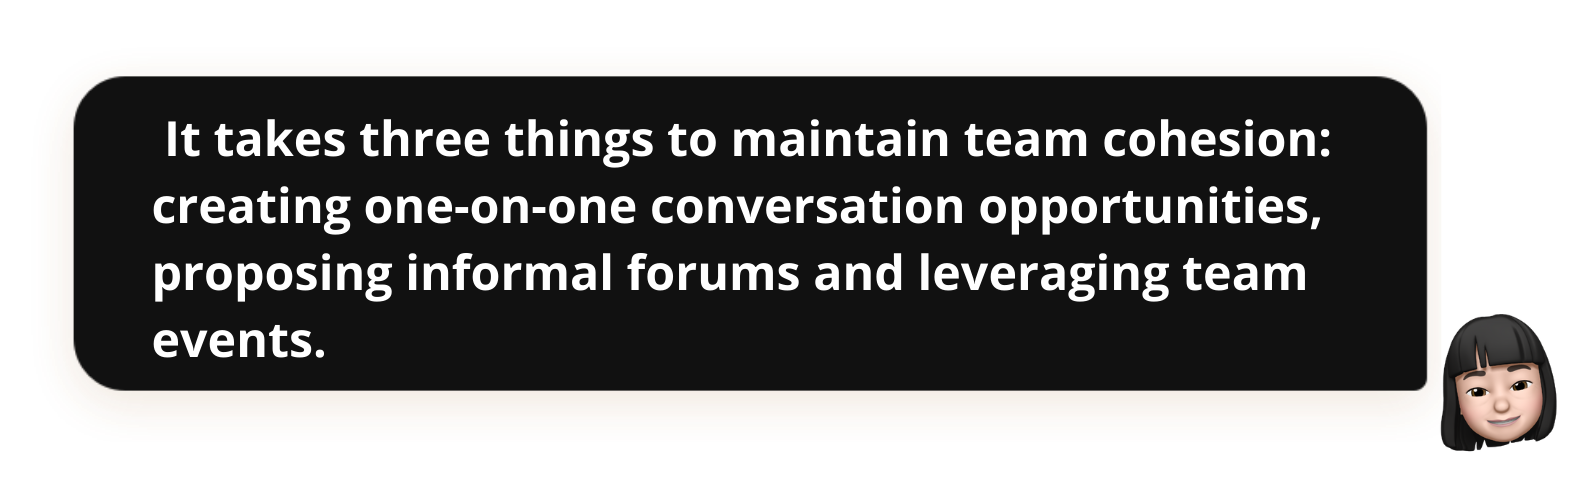 It takes three things to maintain team cohesion: creating one-on-one conversation opportunities, proposing informal forums and leveraging team events.